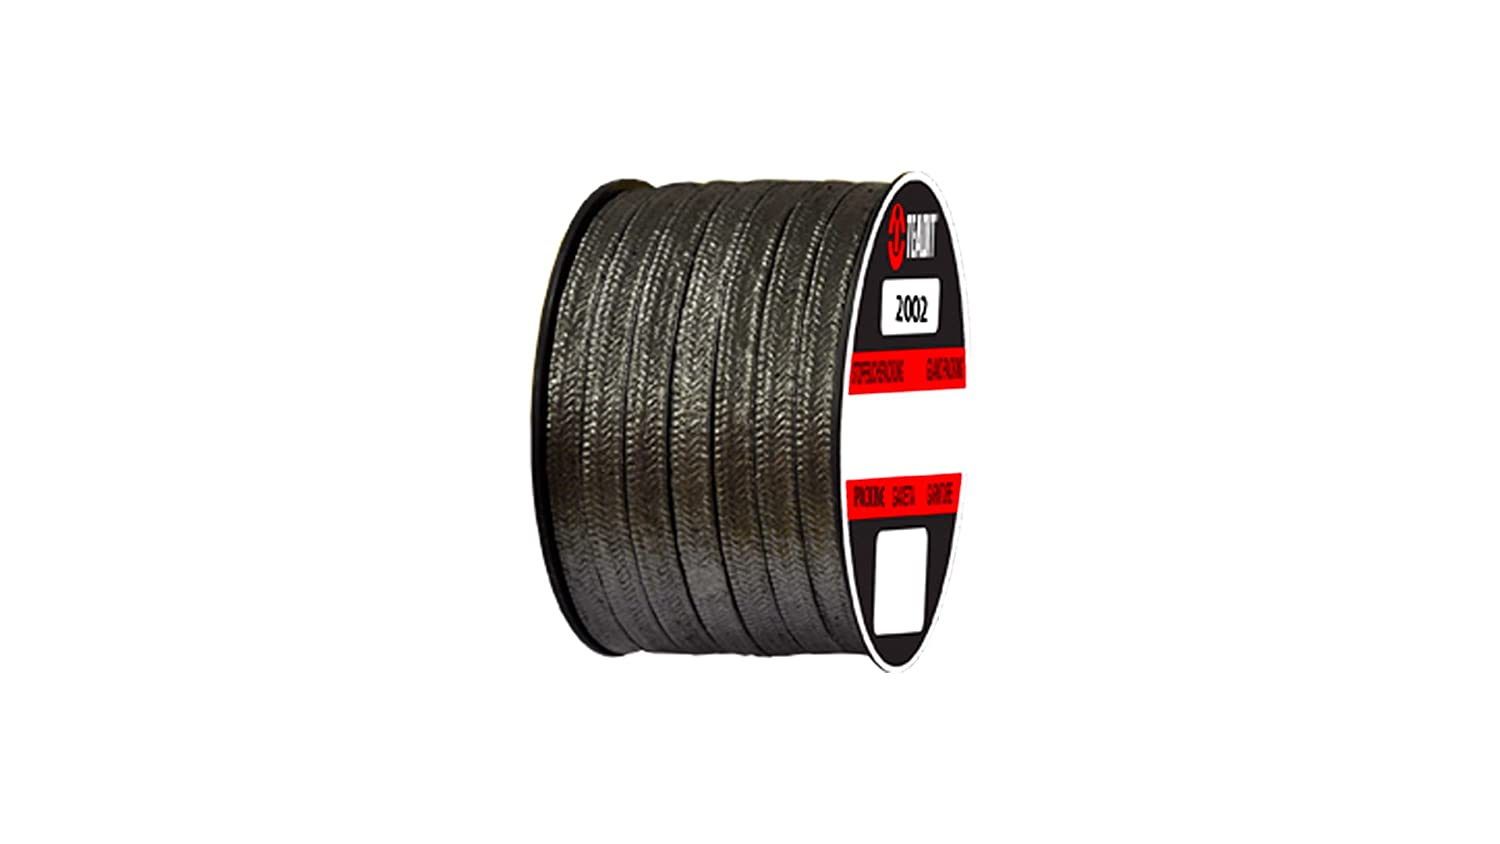 Graphite Filled Spool STCC 2002.562x2 2002 Teadit Style Carbon Yarn Sterling Seal and Supply 9//16 CS x 2 lb